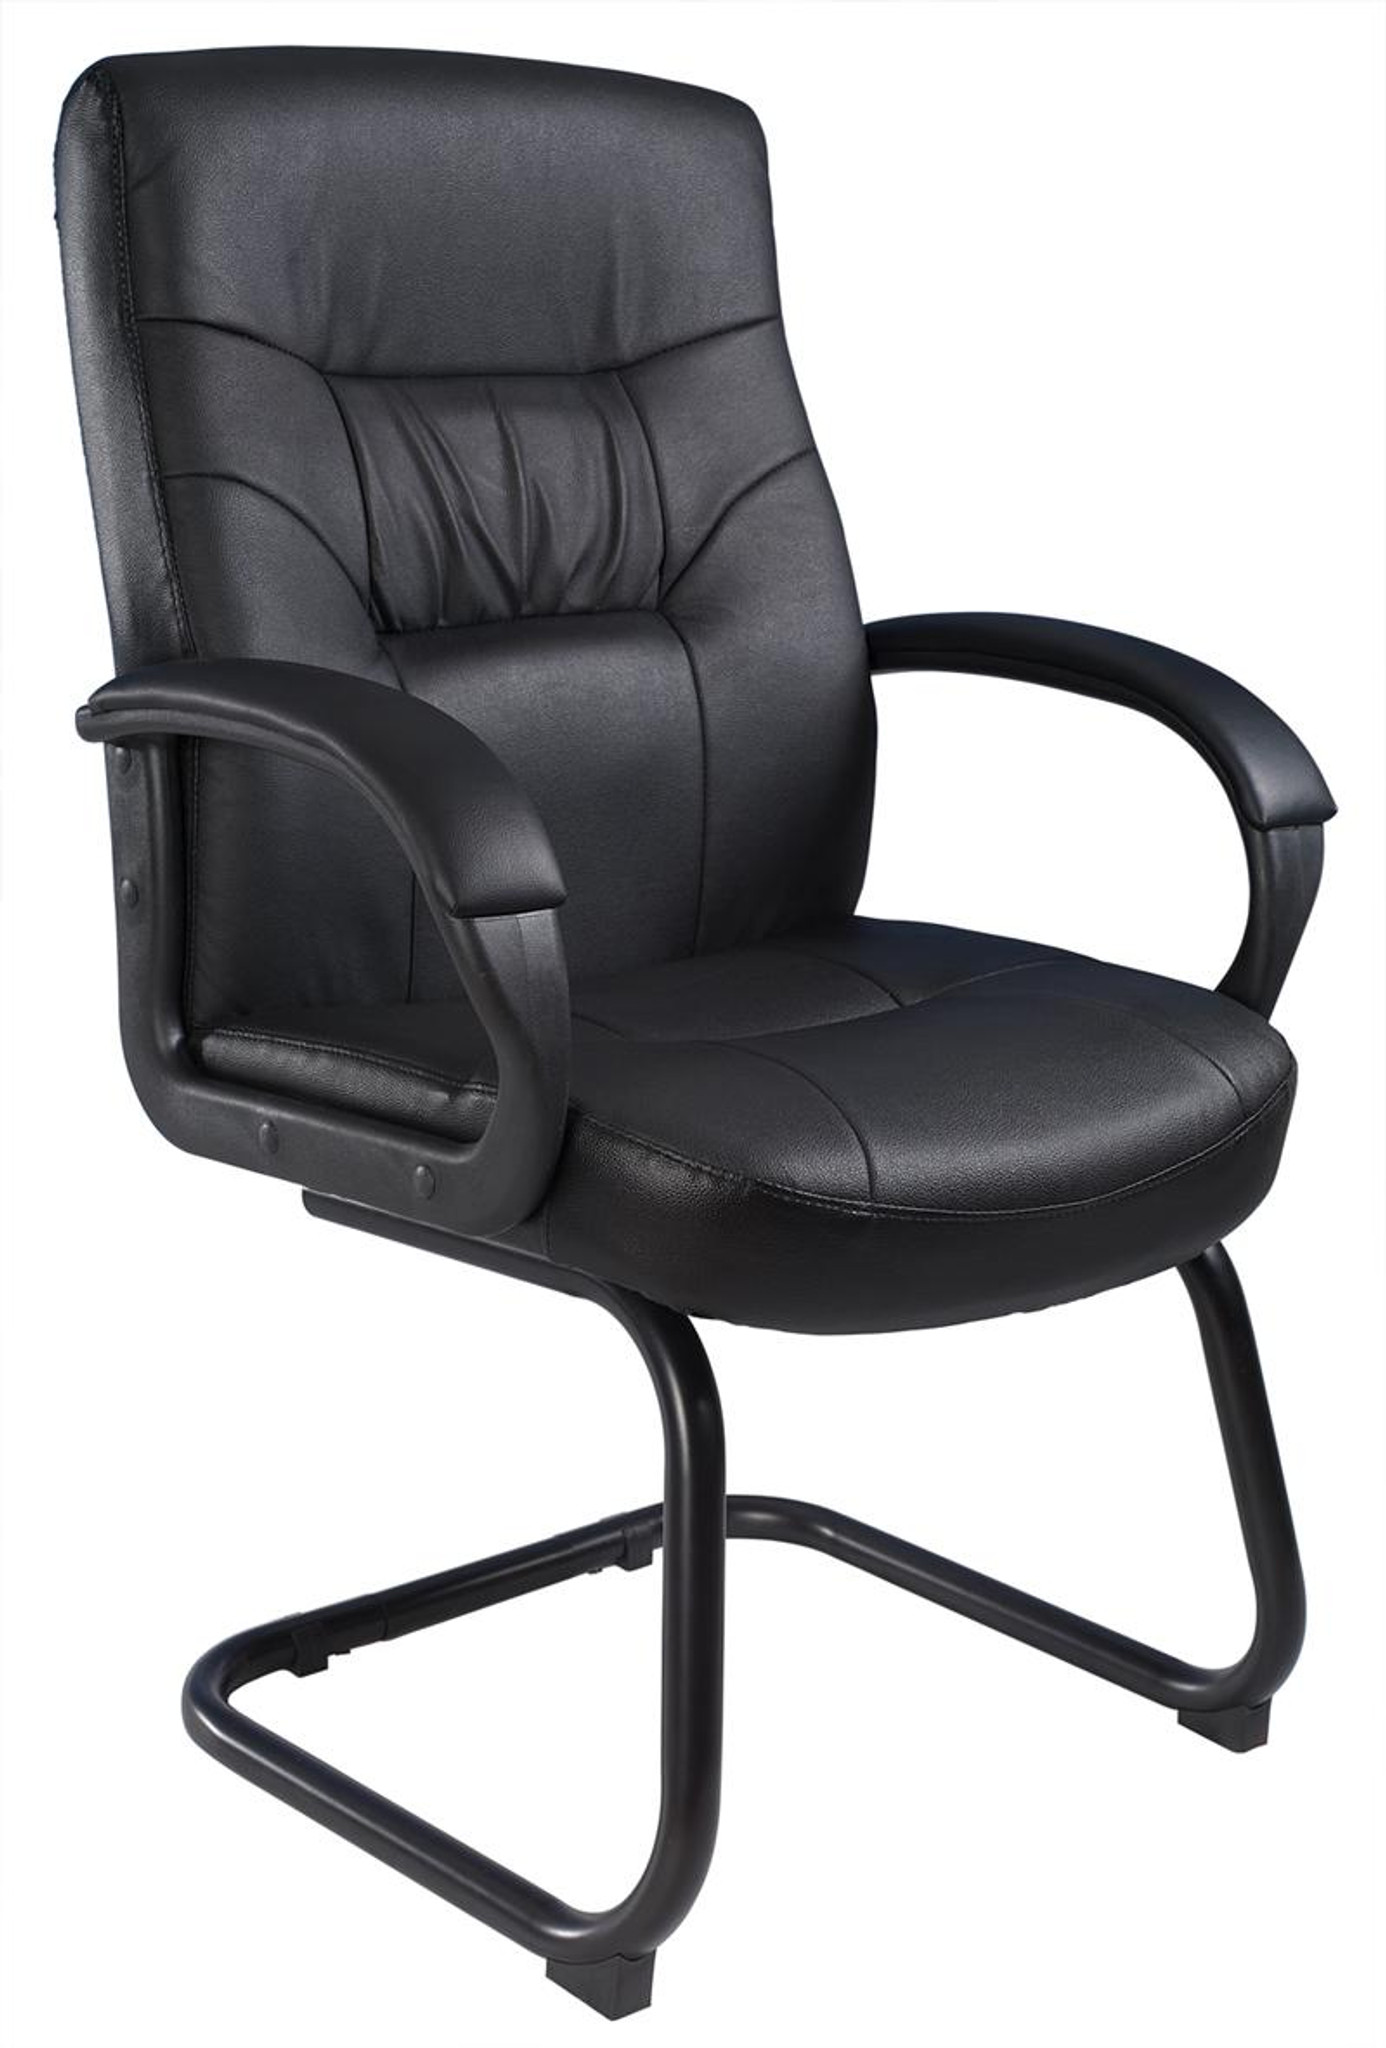 boss chairs b7506 black leather plus guest chair with sled base